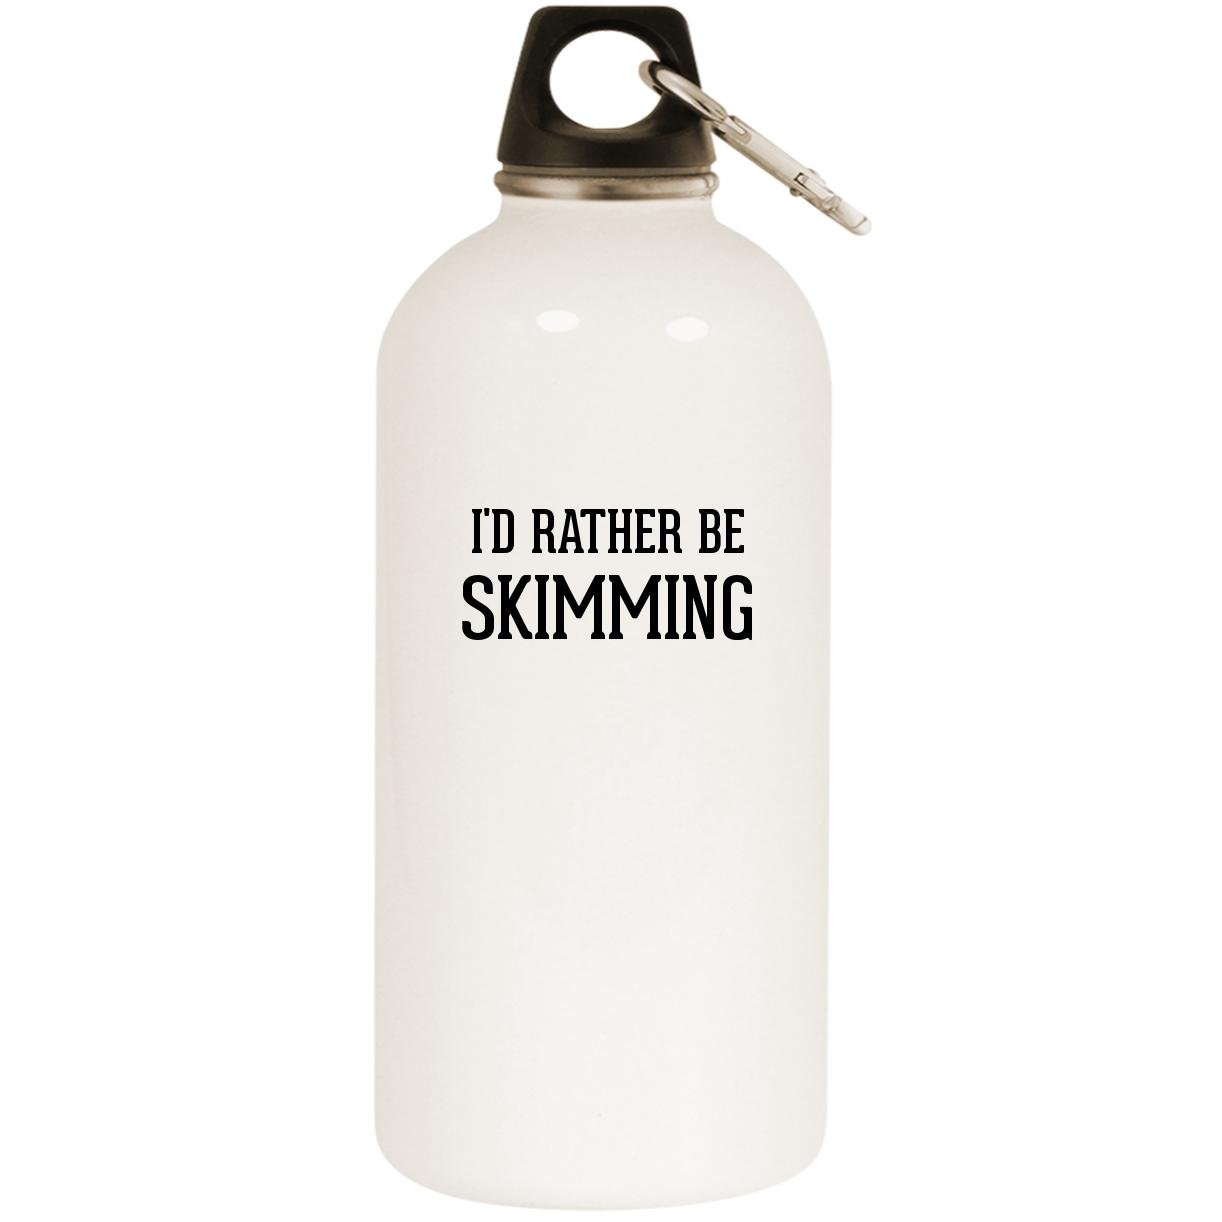 I'd Rather Be SKIMMING - White 20oz Stainless Steel Water Bottle with Carabiner